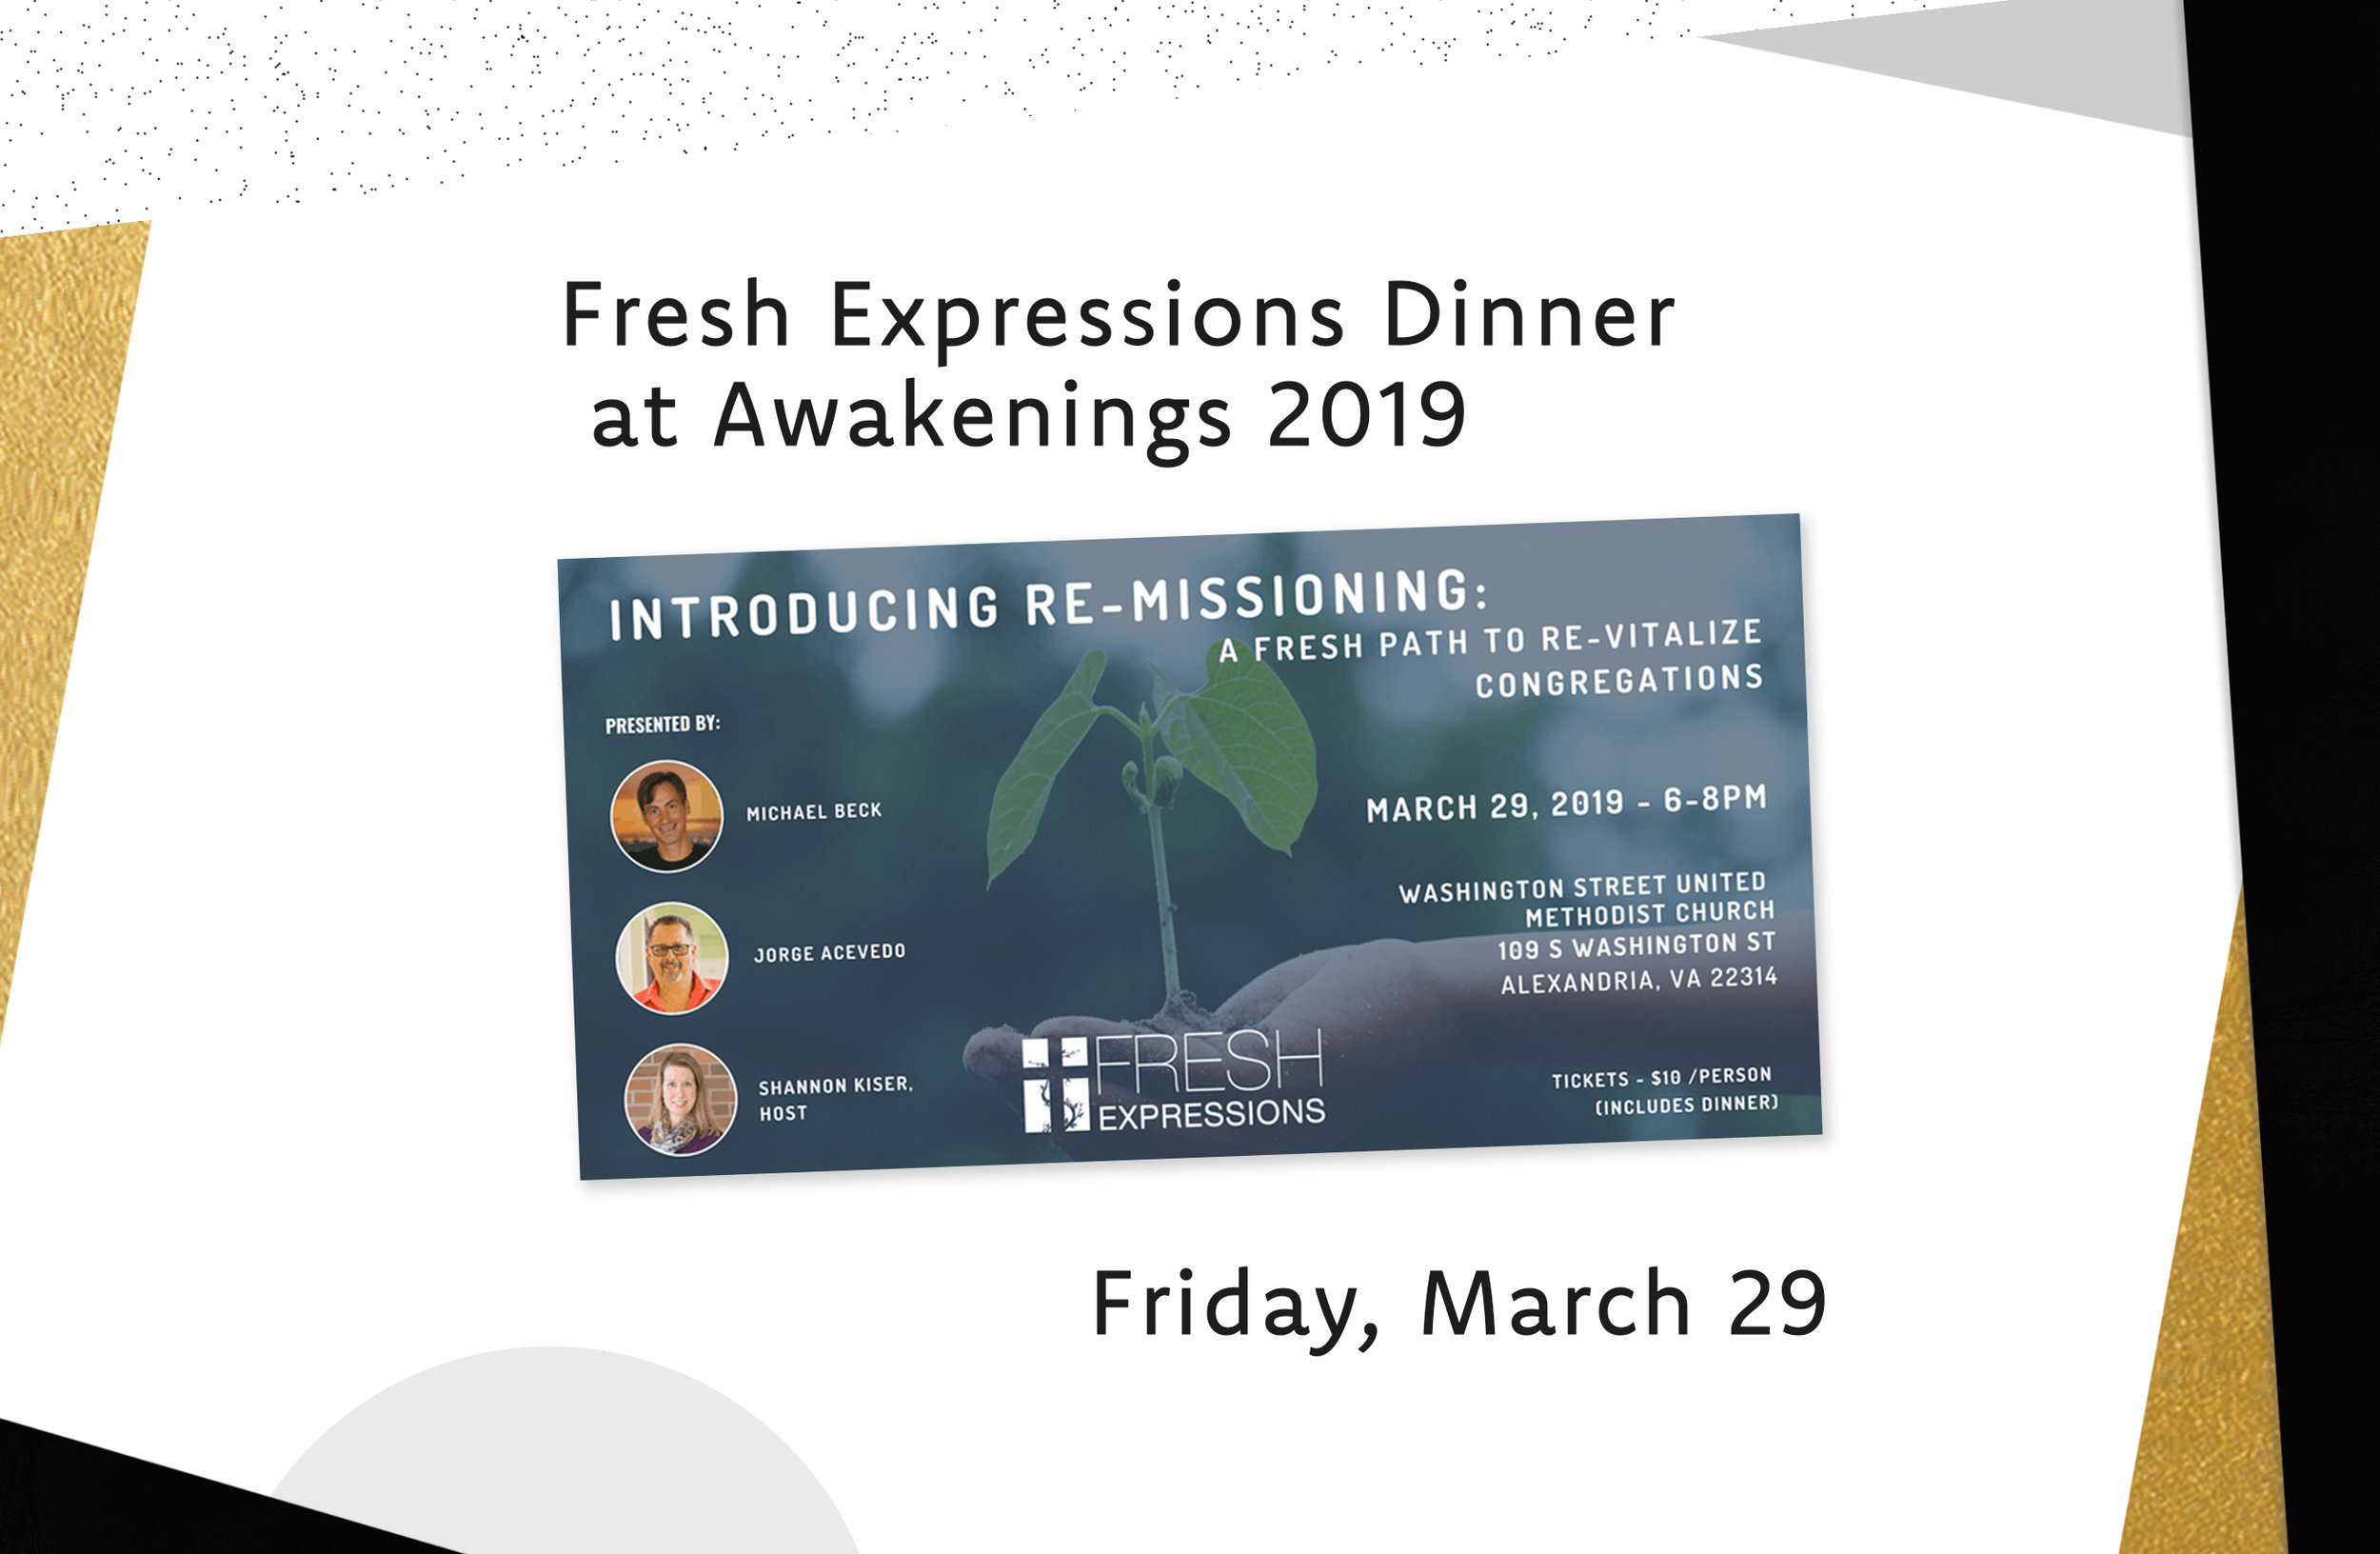 FRESH EXPRESSIONS DINNER: Friday, march 29 at 6:00pm - Introducing Re-Missioning: A Fresh Path to Re-Vitalize CongregationsAcross the United States and beyond, the God who